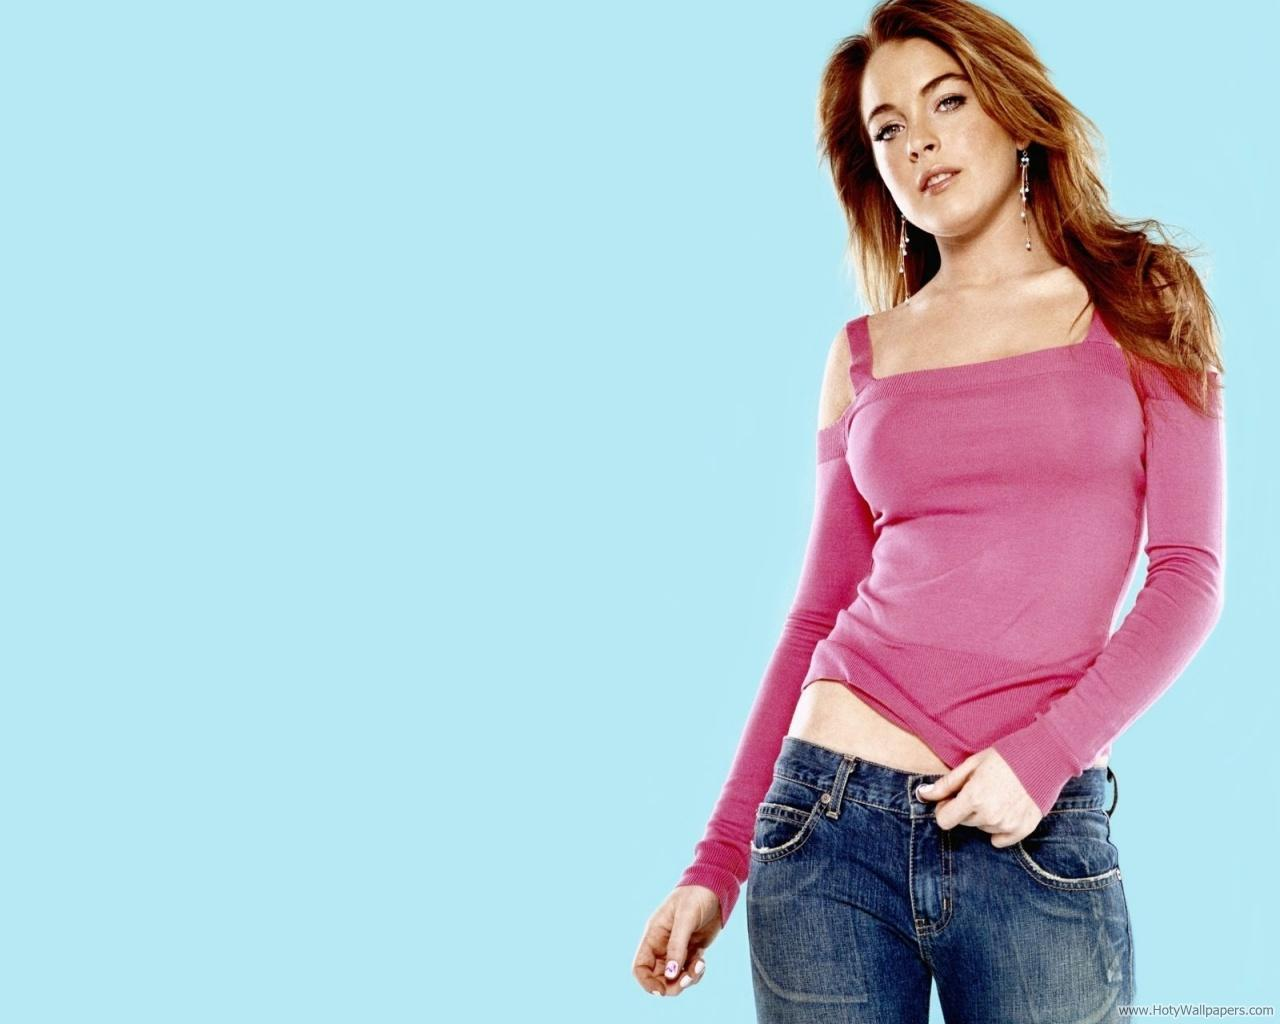 in his shade: lindsay lohan hd wallpapers-1600x1200